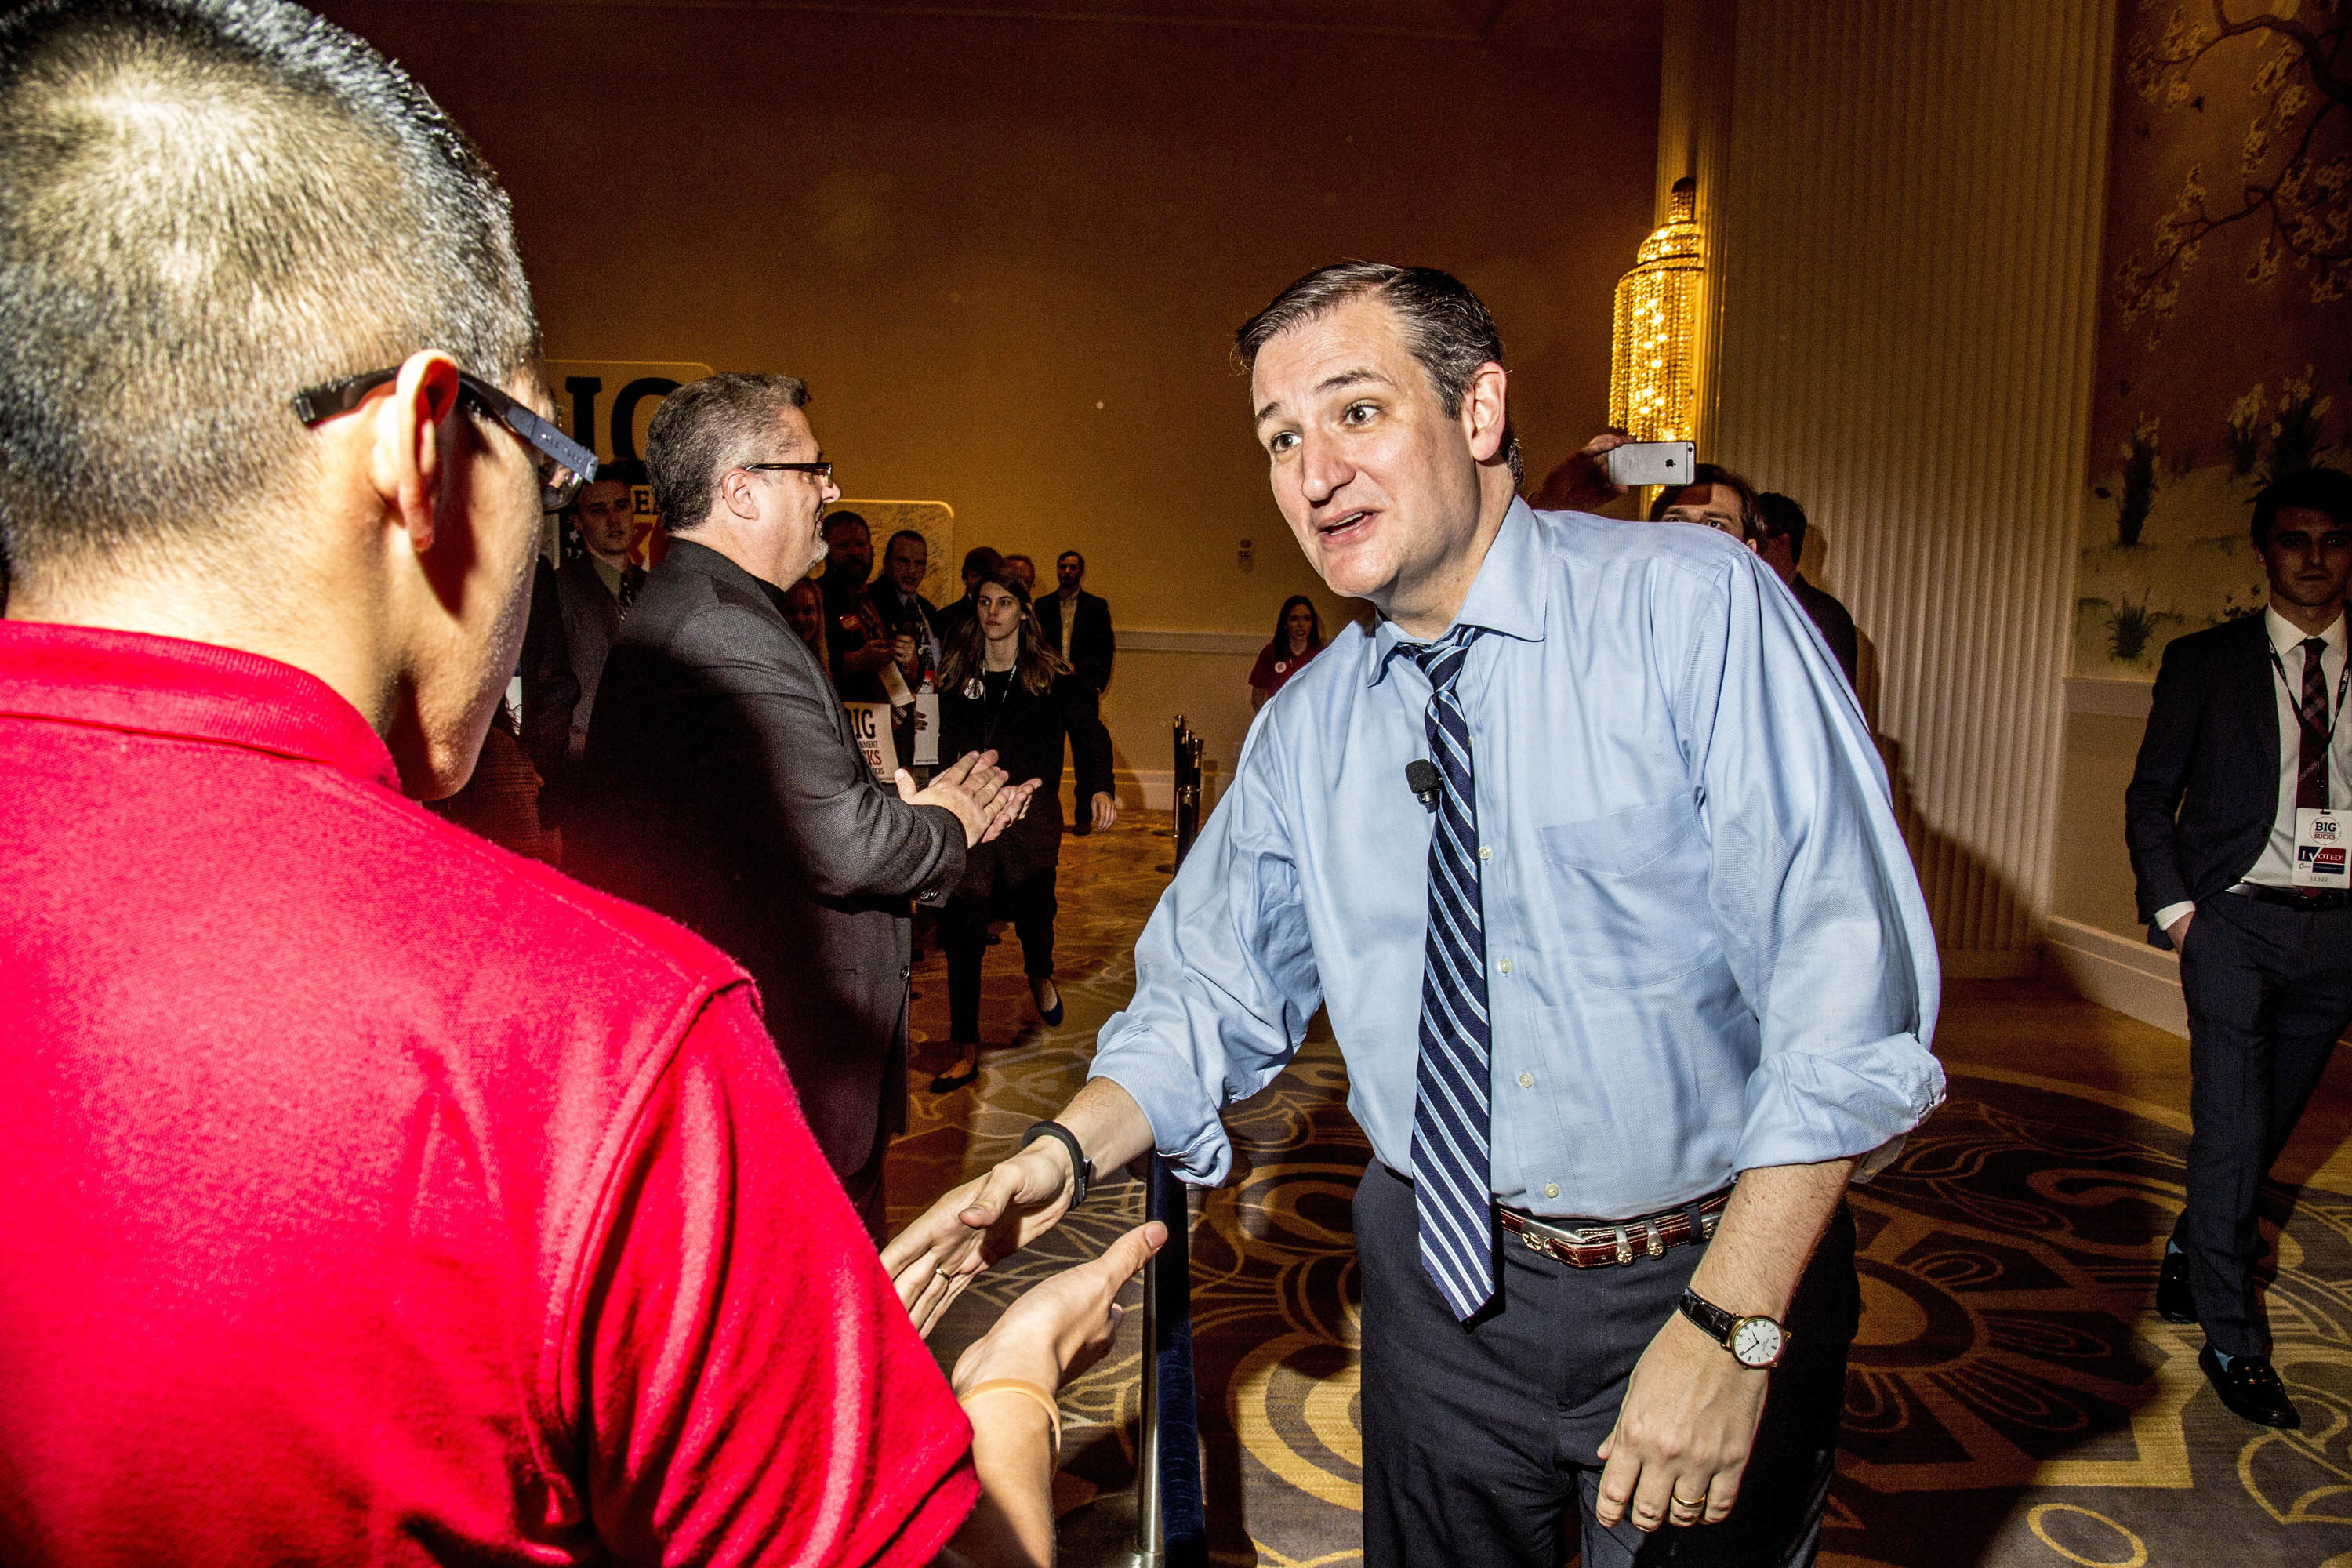 Cruz believes his uncompromising style will lure disaffected conservatives back to the polls in 2016.